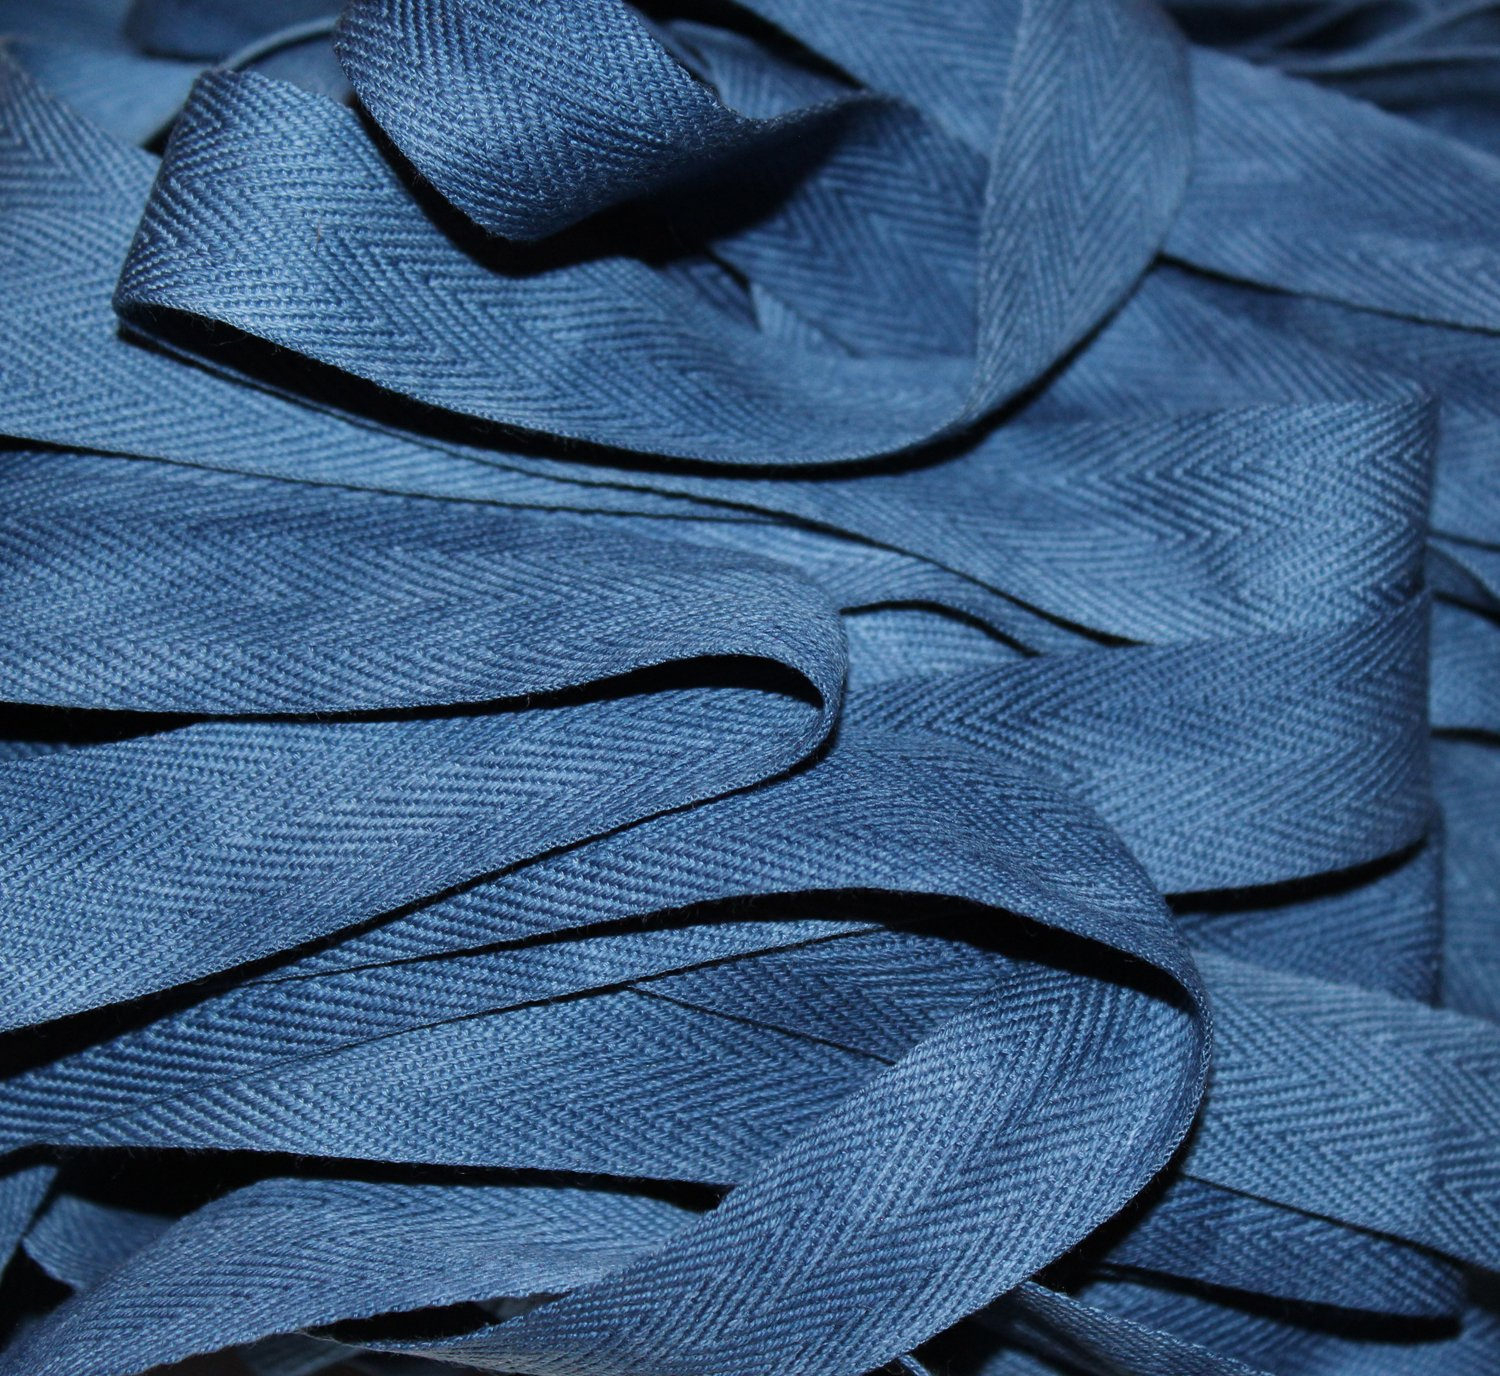 Azure - Hand-dyed Cotton Twill Tape